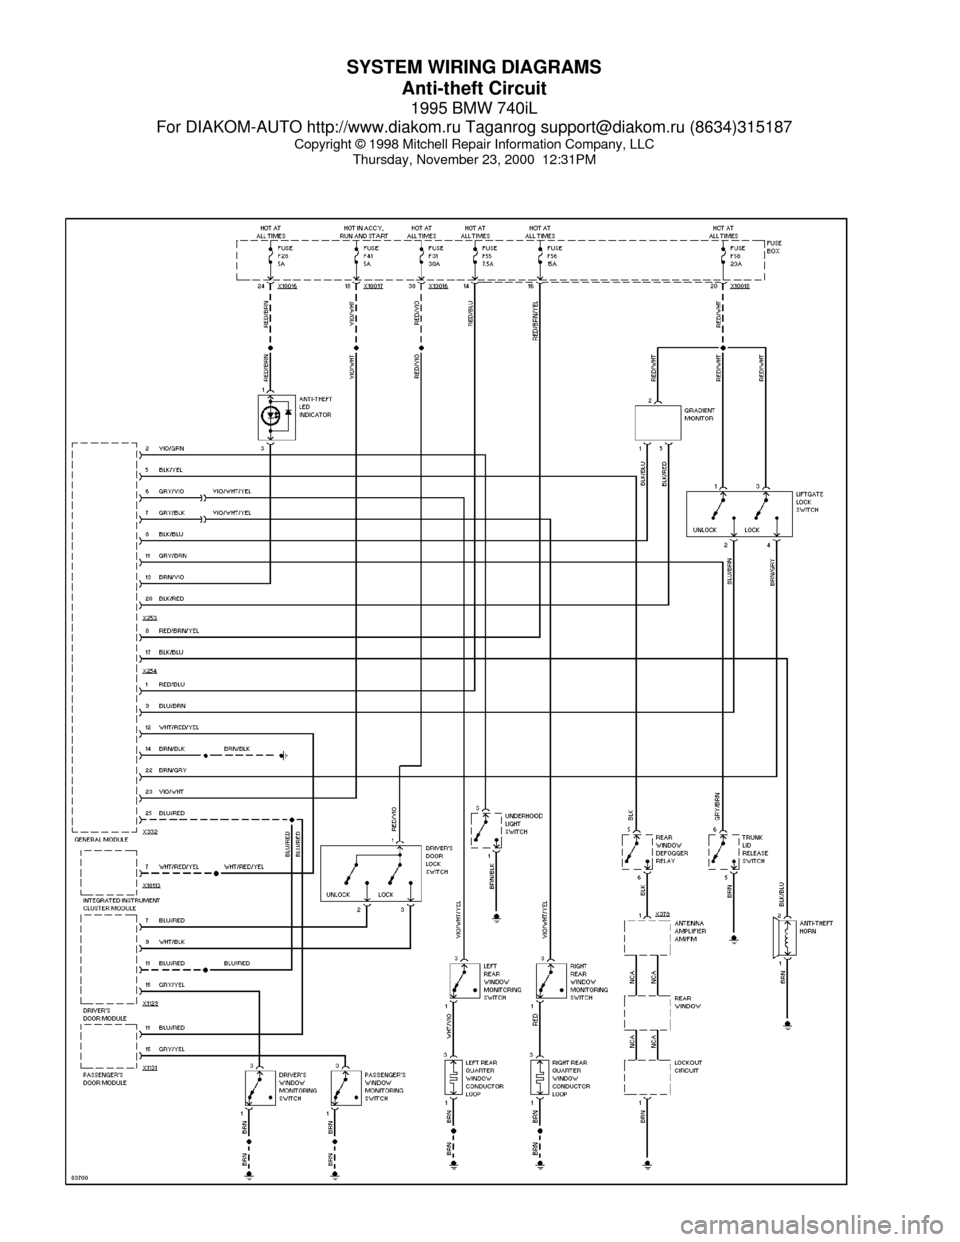 e38 radio wiring diagram bmw 740il 1995 e38 system wiring diagrams bmw e38 amplifier wiring diagram